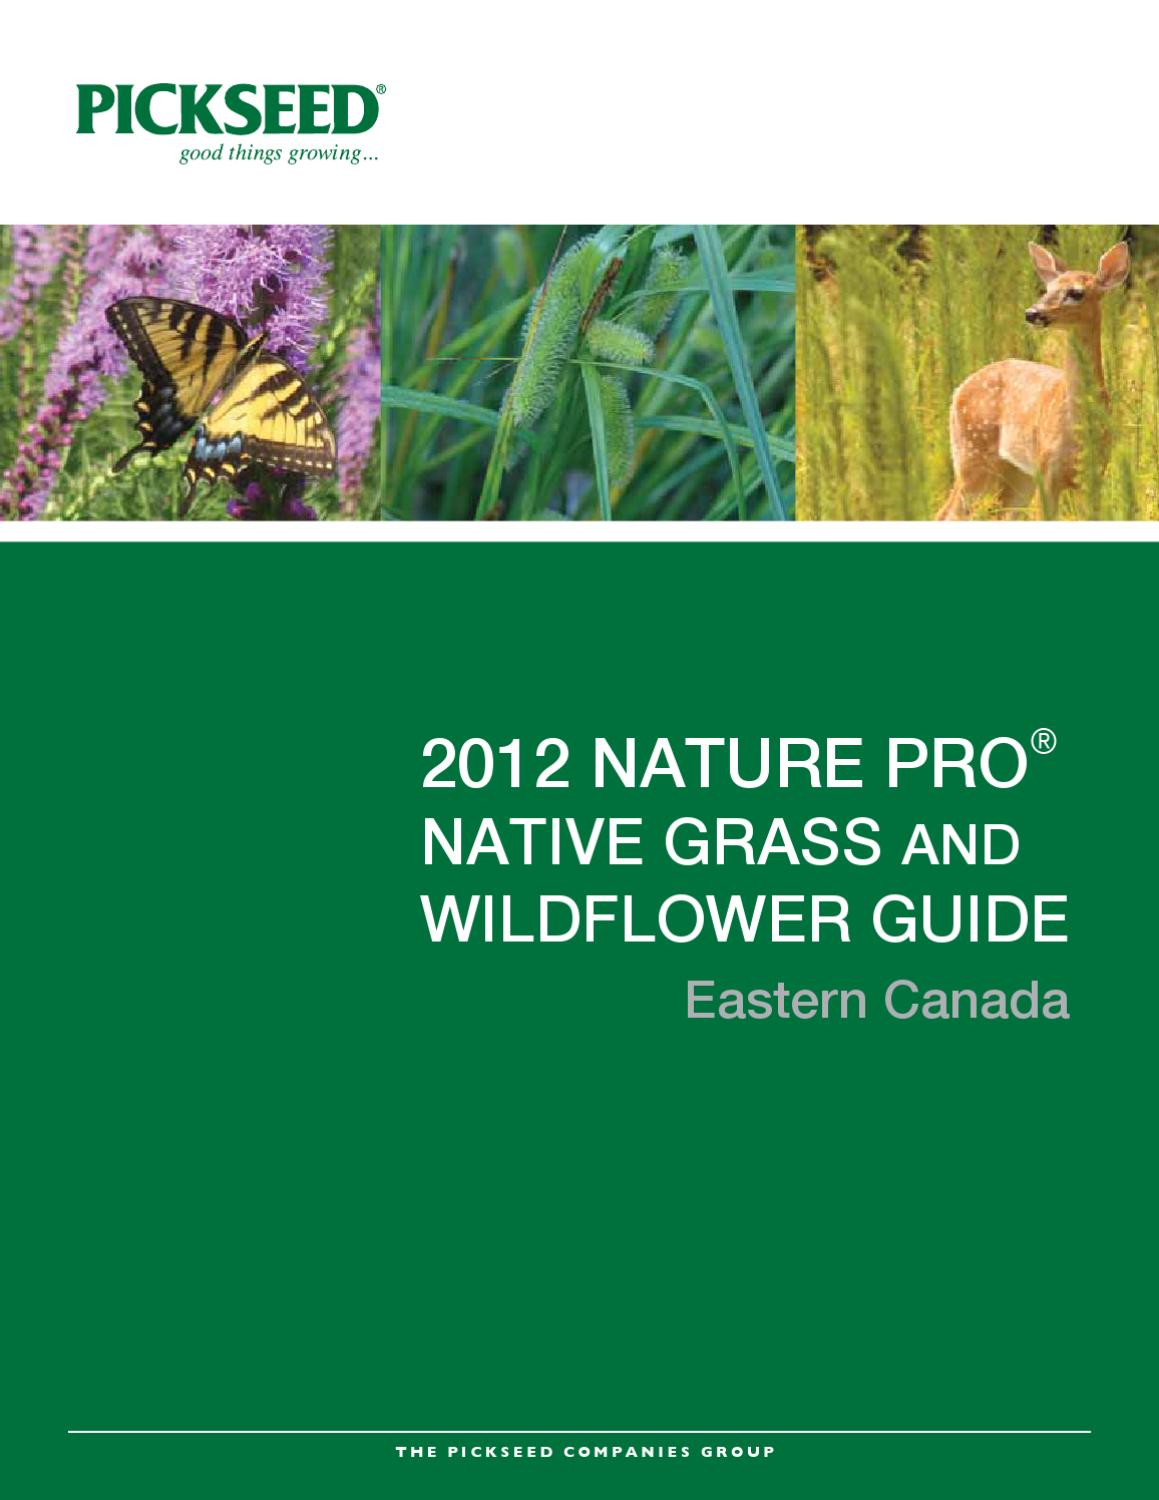 2012 NATURE PRO ®NATIVE GRASS ANDWILDFLOWER GUIDE by Ian